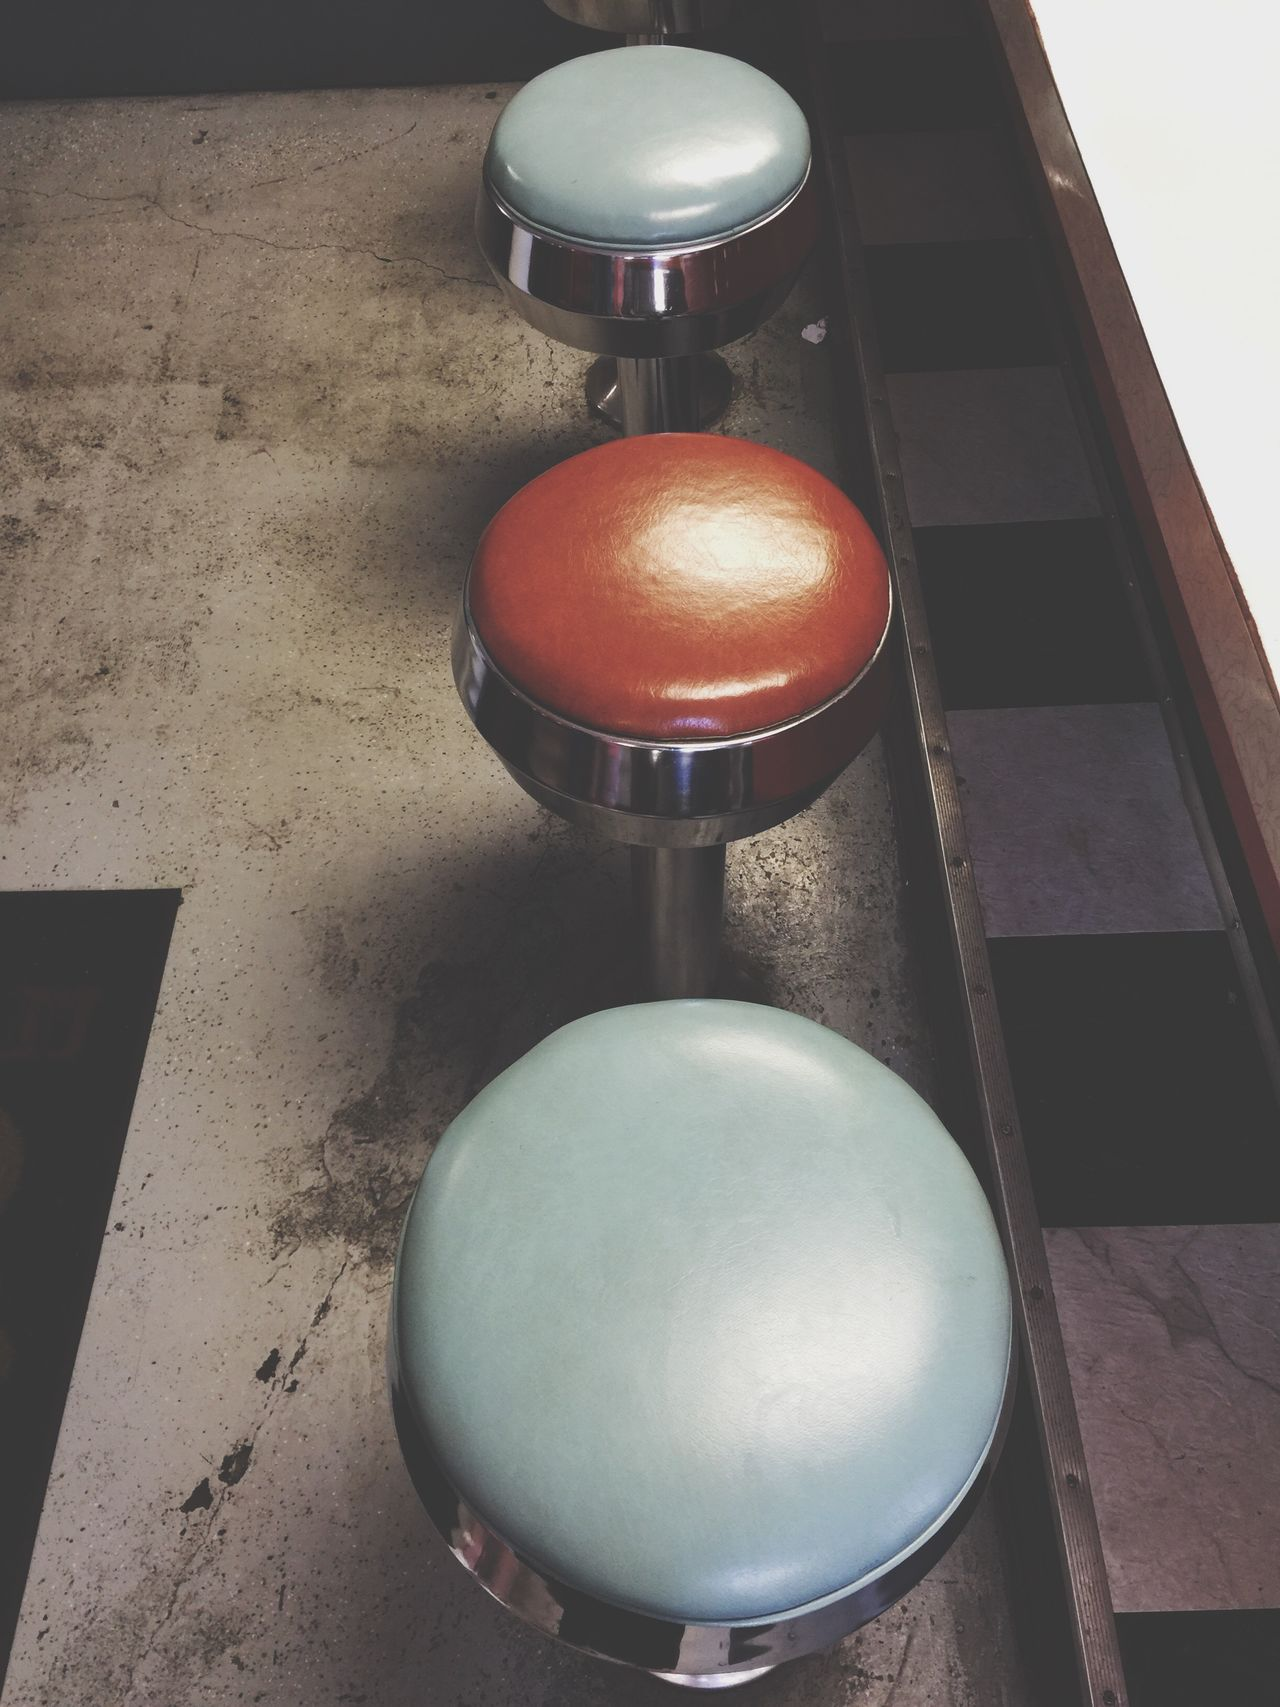 Stools Stool Vintage Treats Sugar Sweets Fun Family Diner Ice Cream Parlor EyeEm Gallery